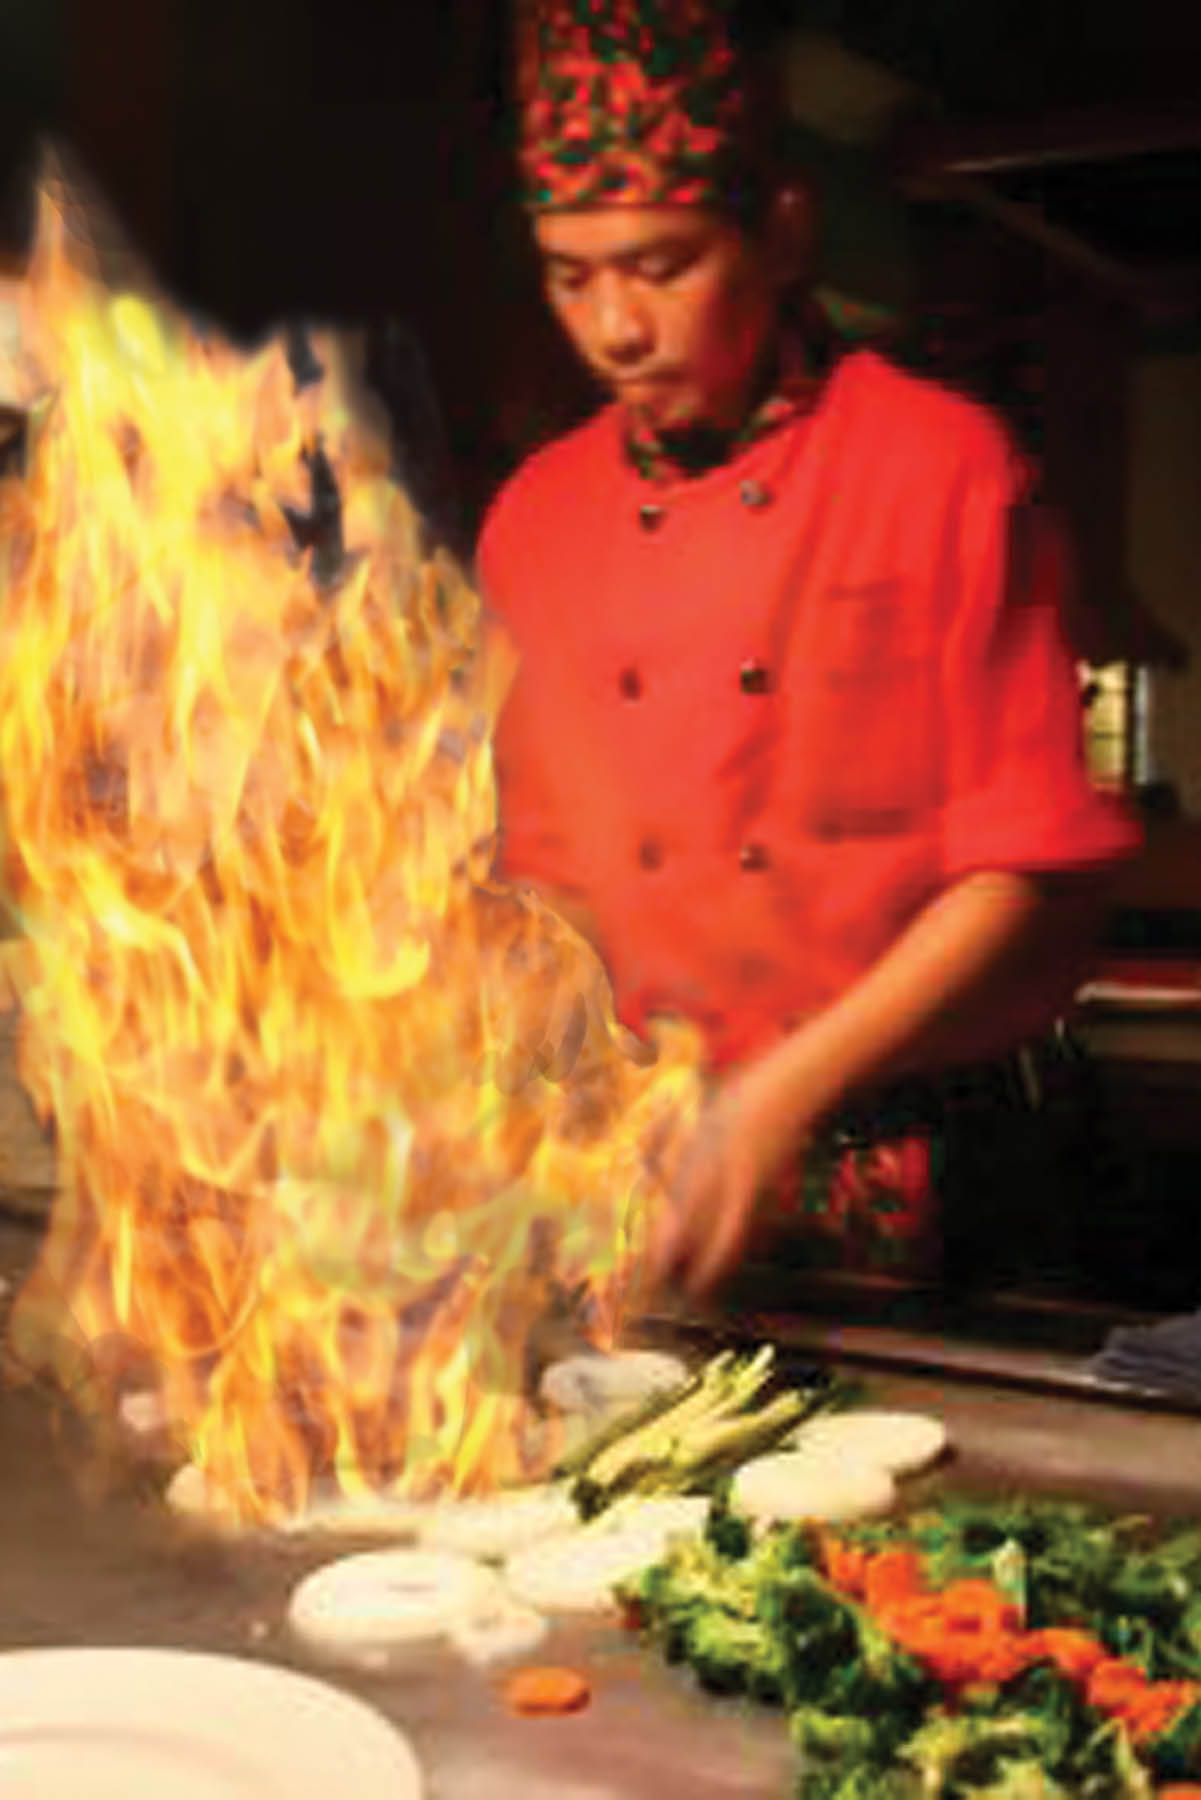 osaka grill and supreme buffet chef cooking with fire